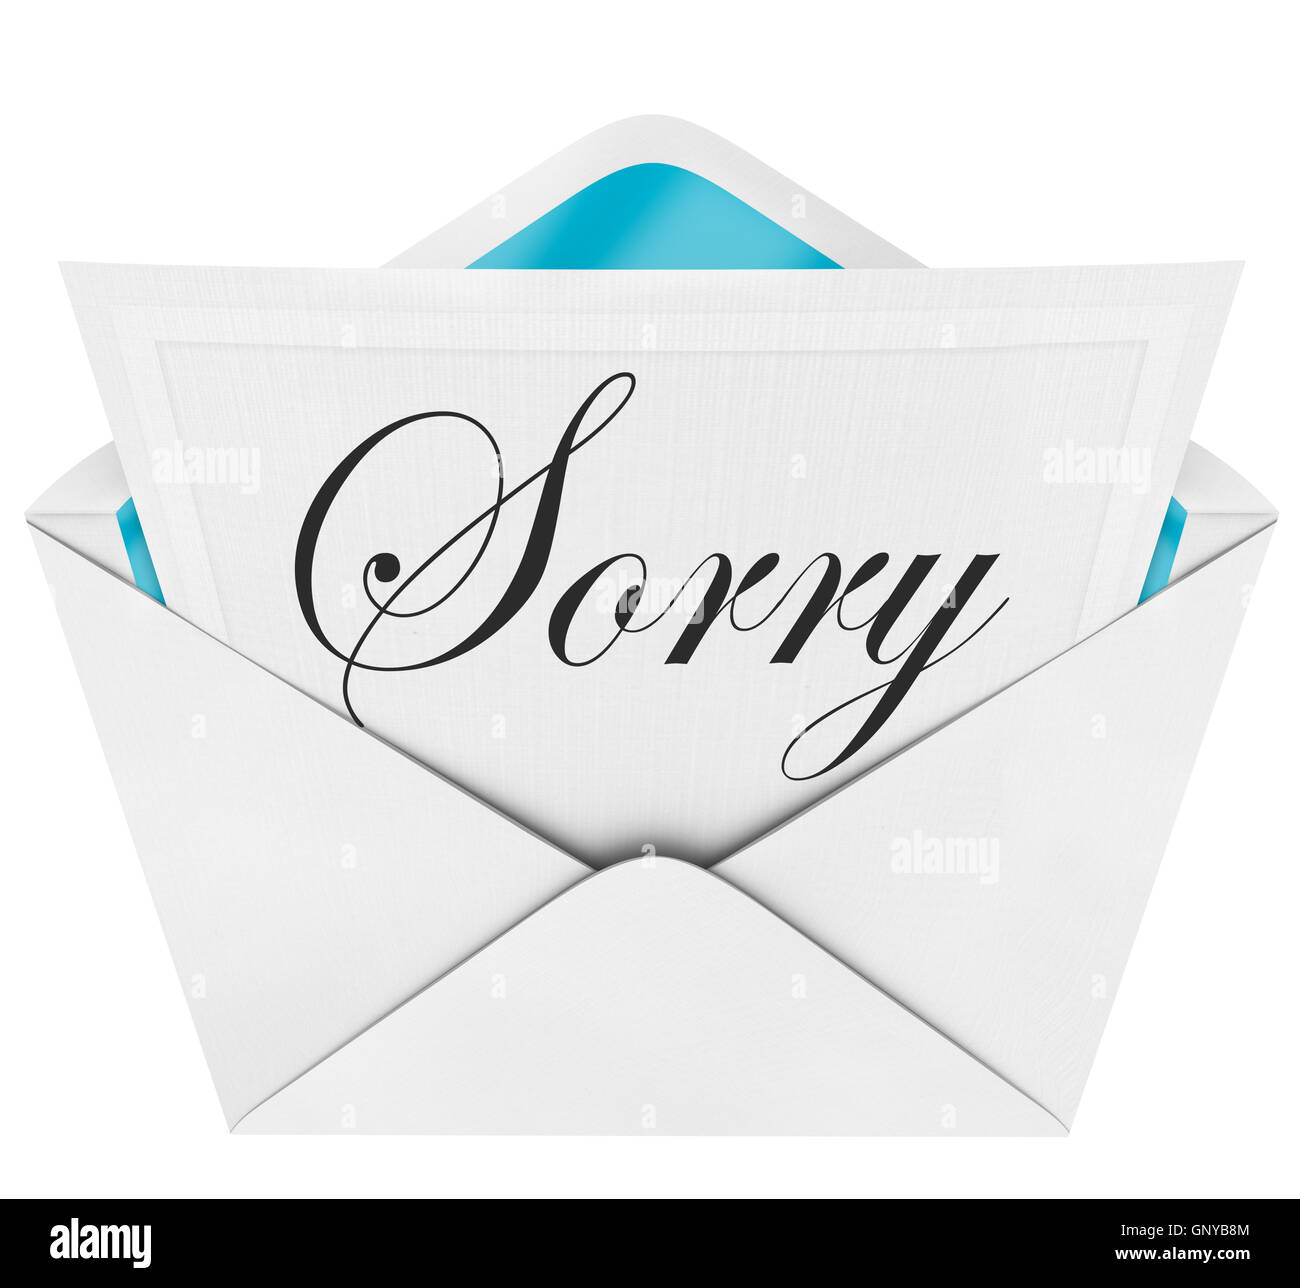 sorry handwritten cursive word open envelope letter